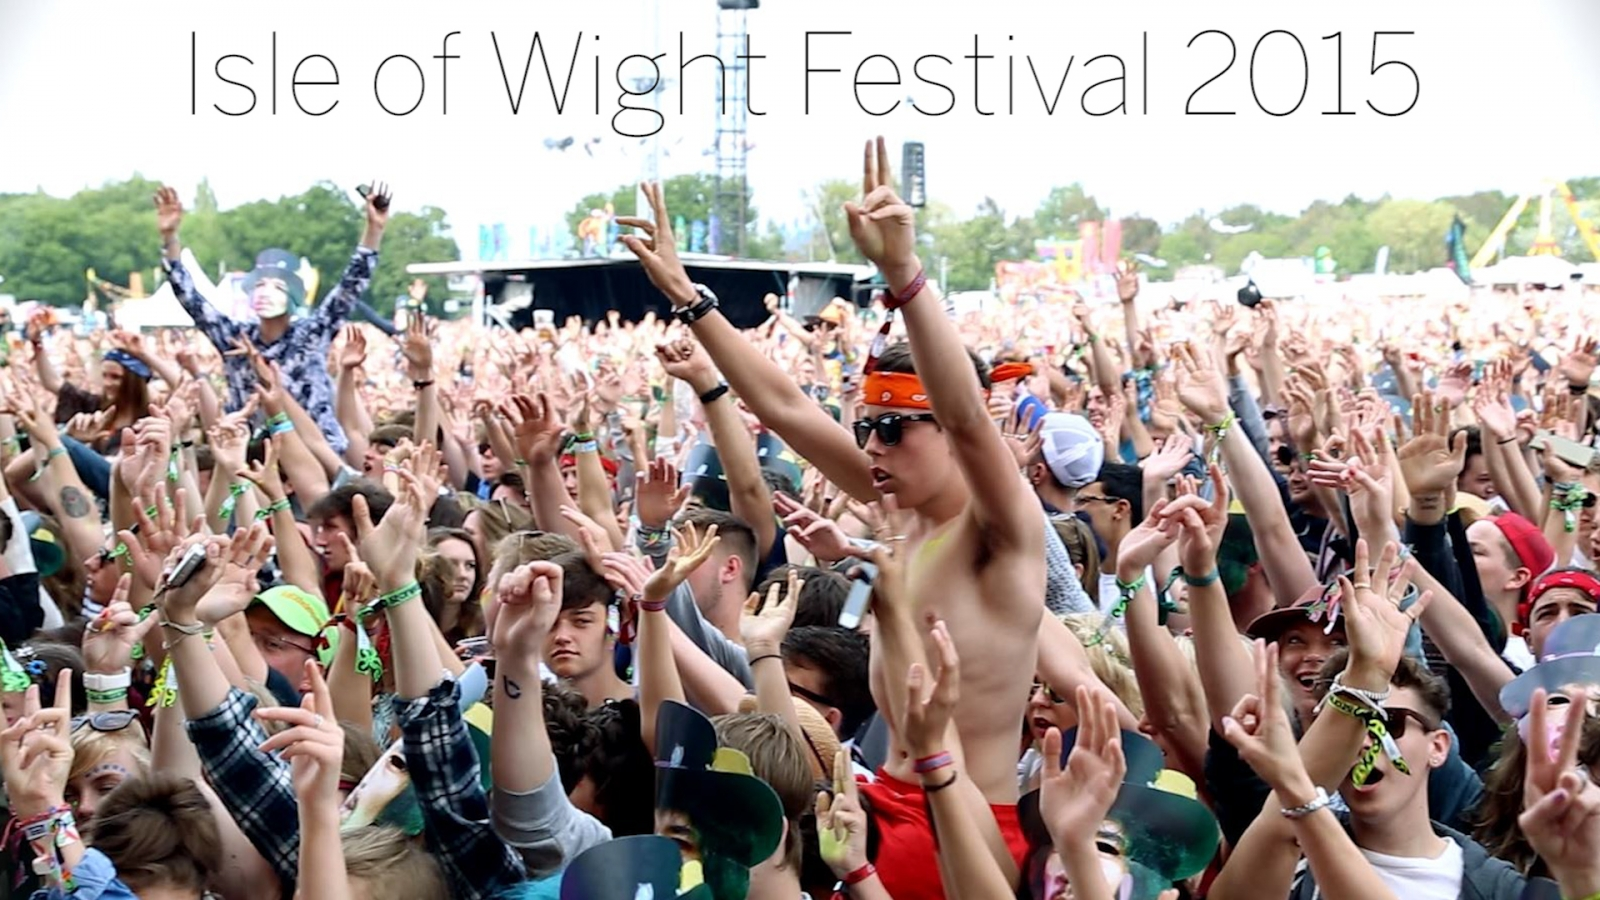 Isle of Wight Festival 2015 Highlights